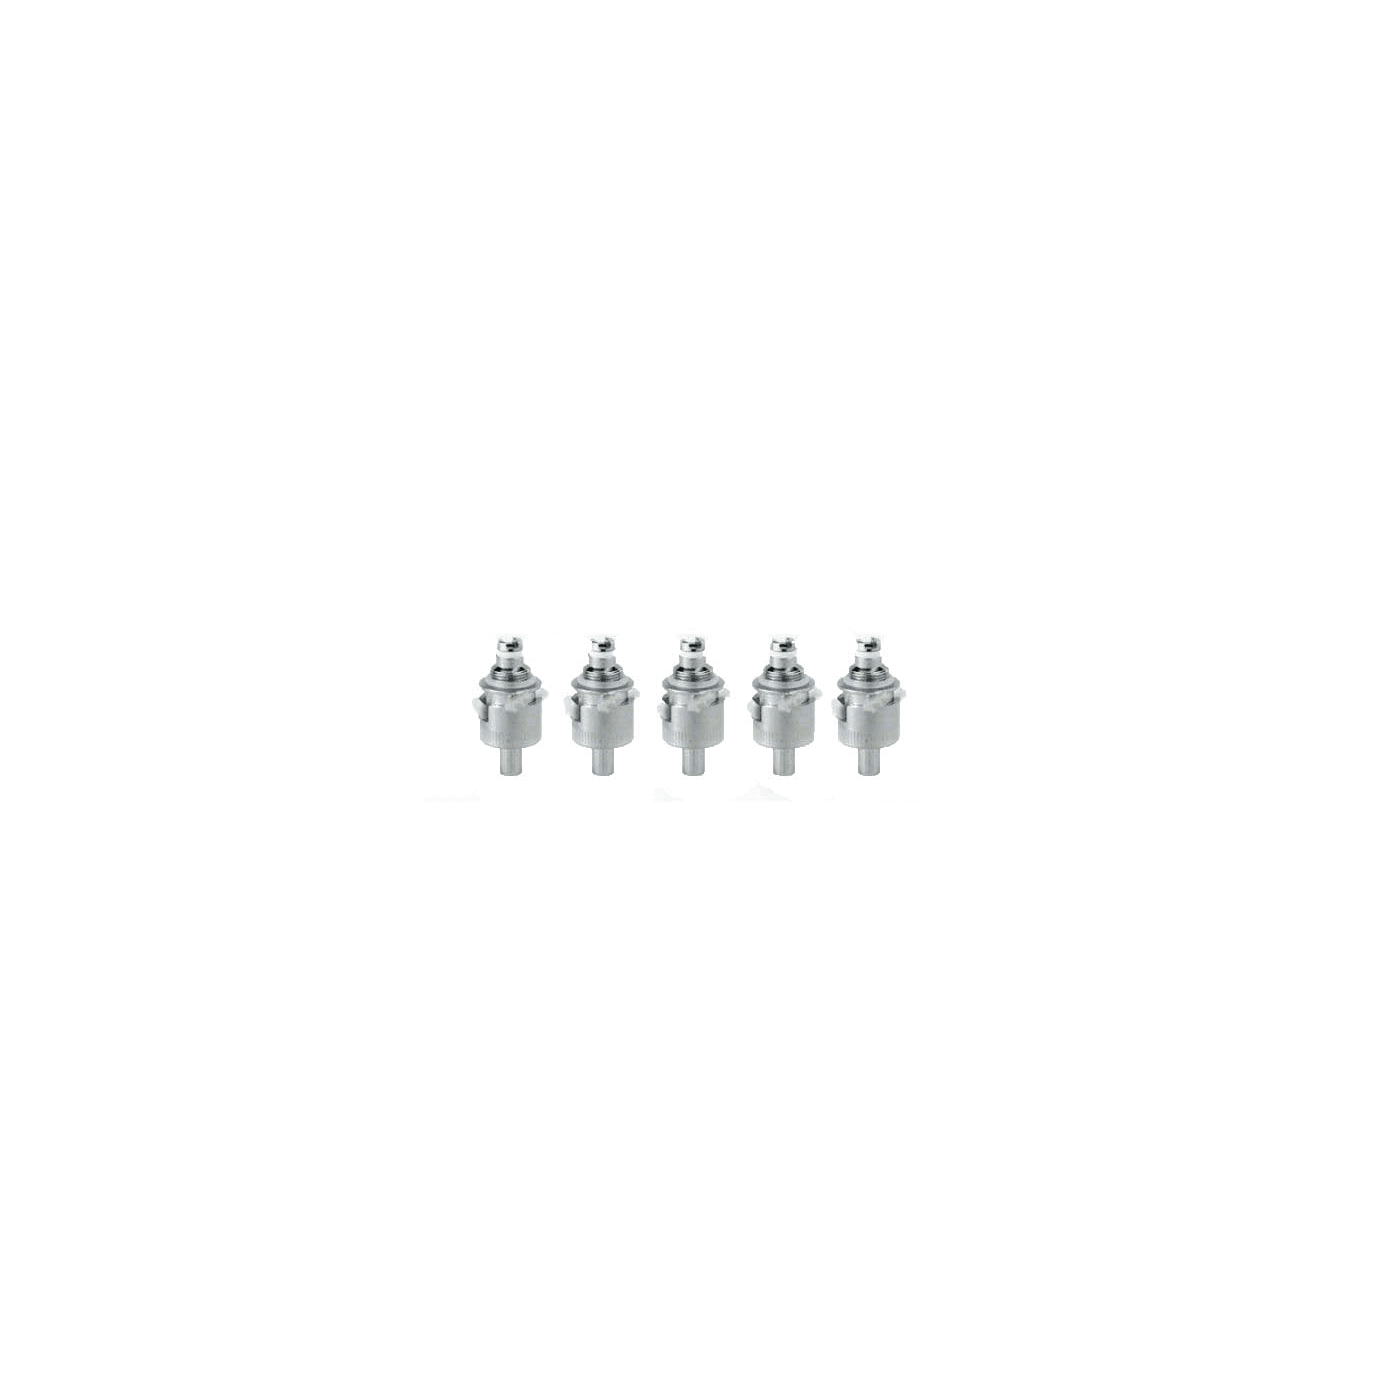 Innokin iClear 16B & 16D Replacement Heads 5 Pack